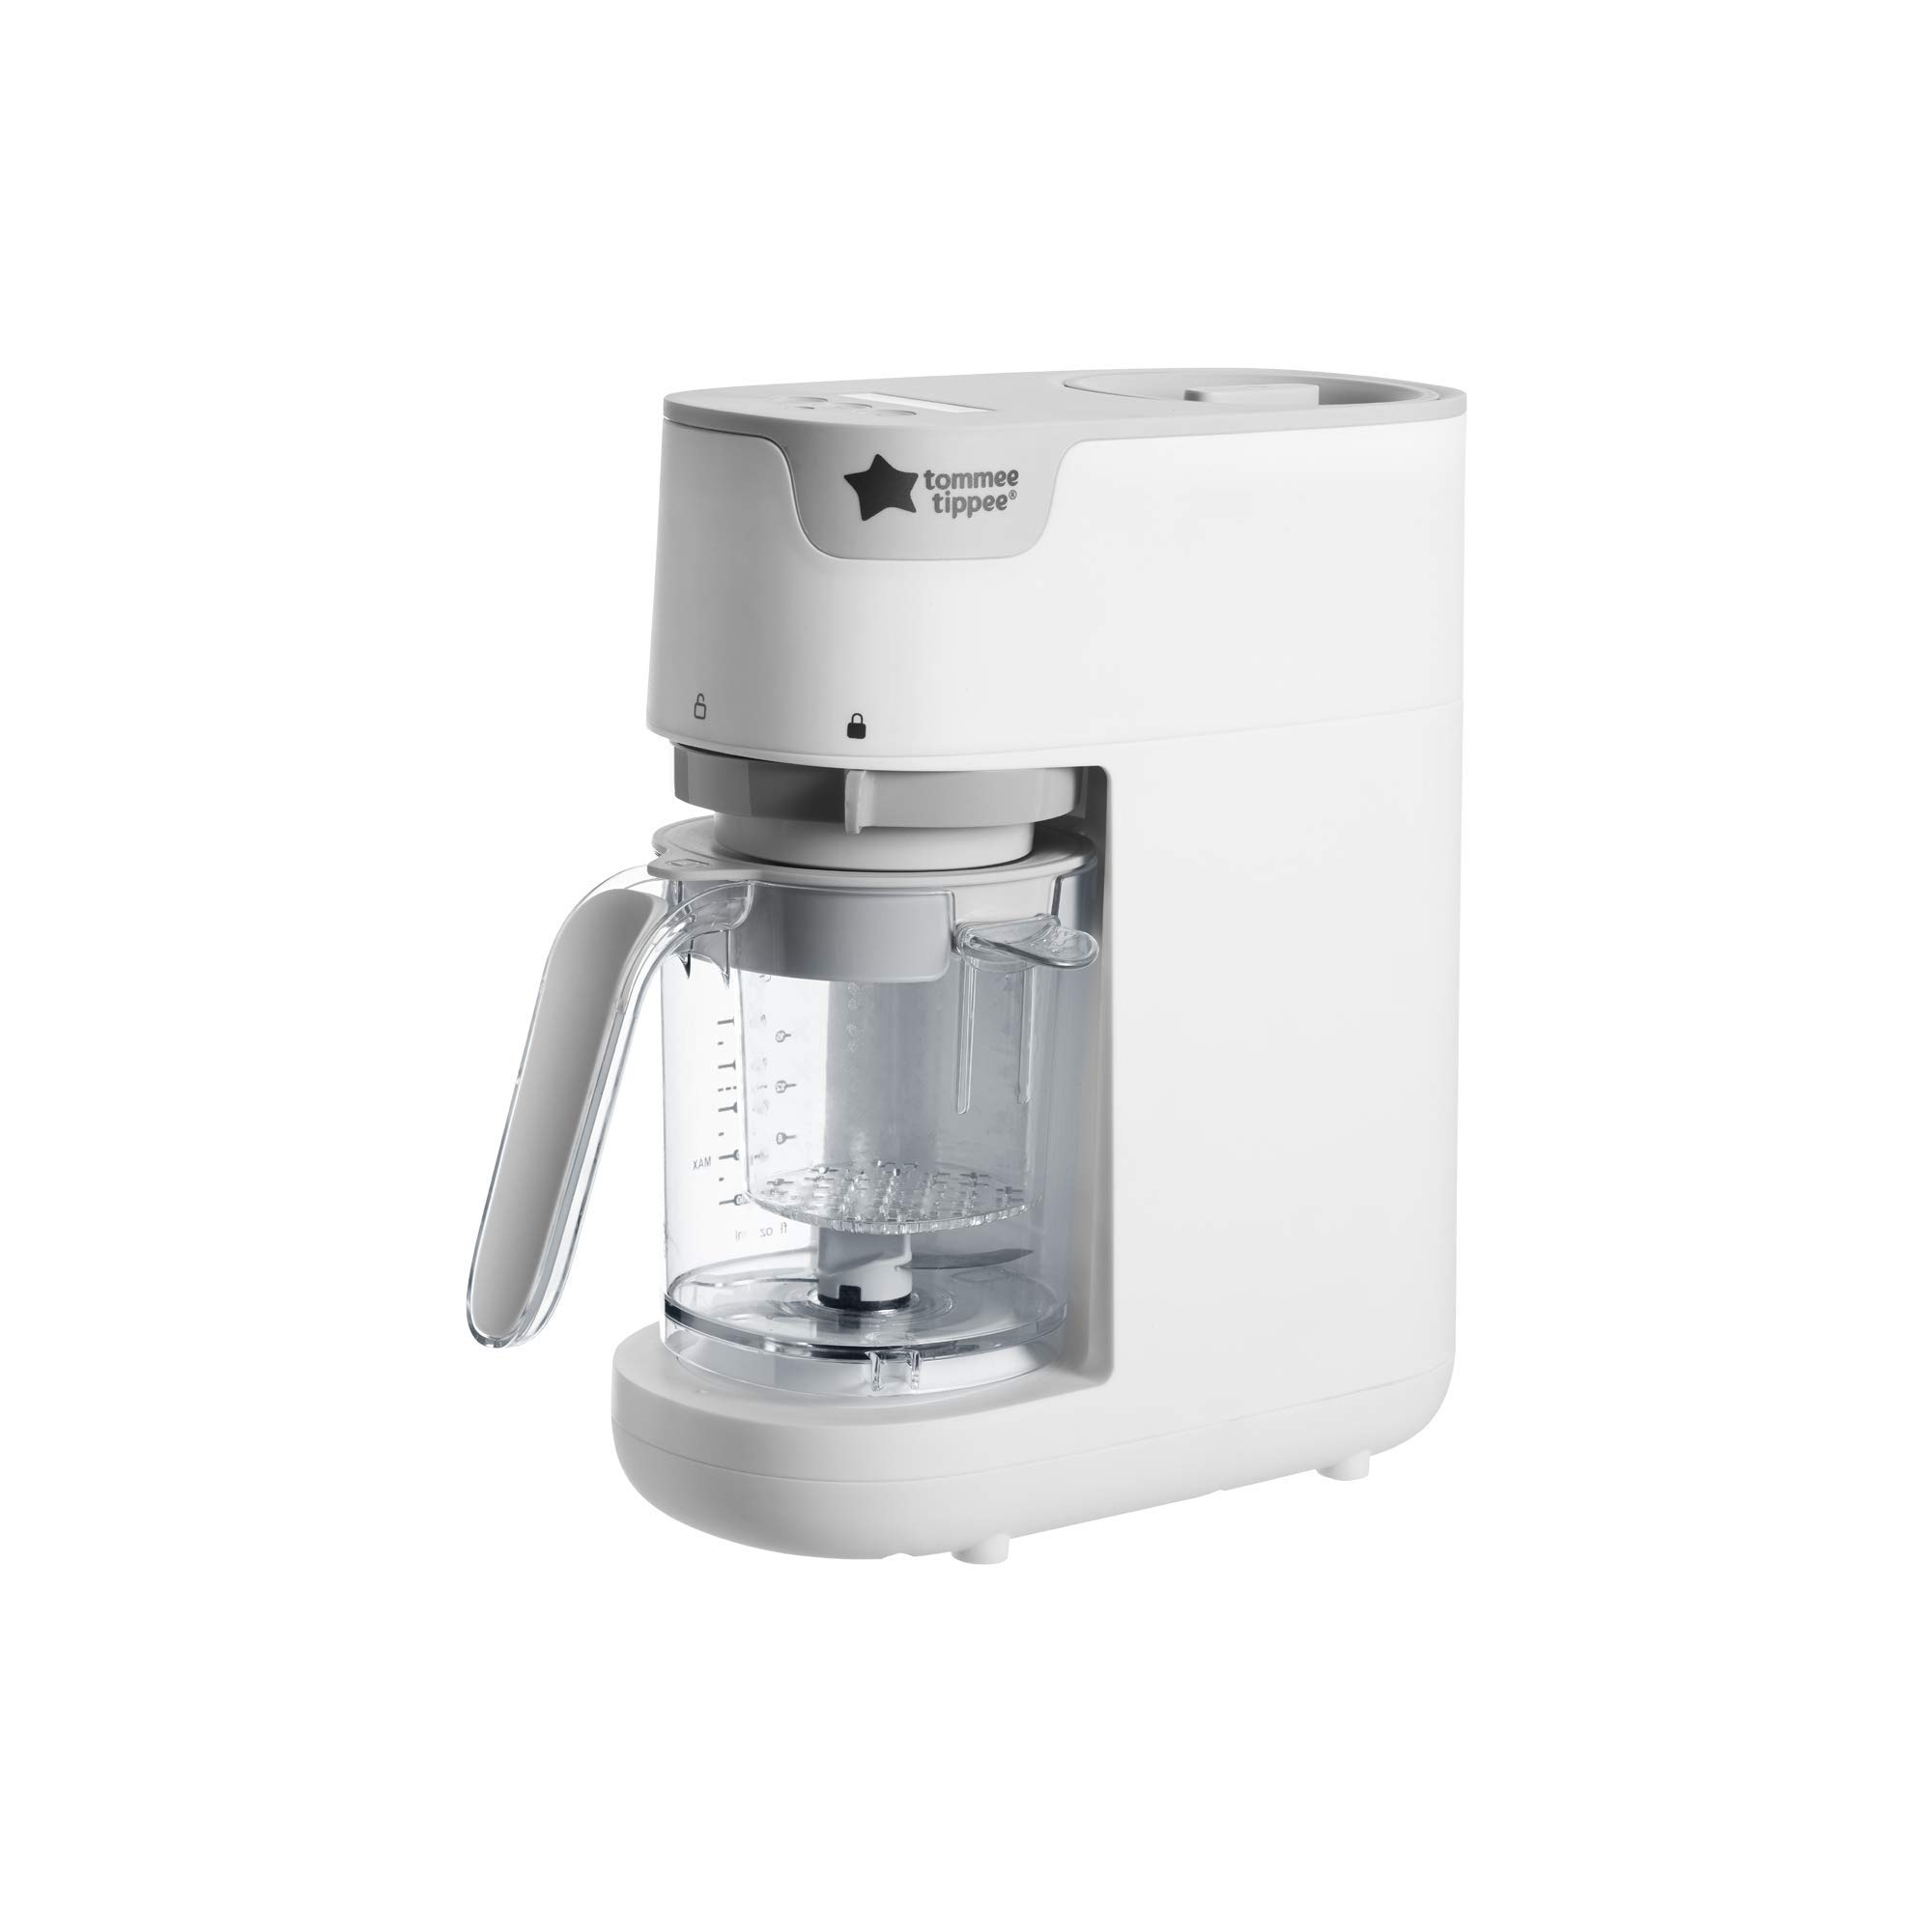 Tommee Tippee Quick Cook Baby Food Maker, White by Tommee Tippee